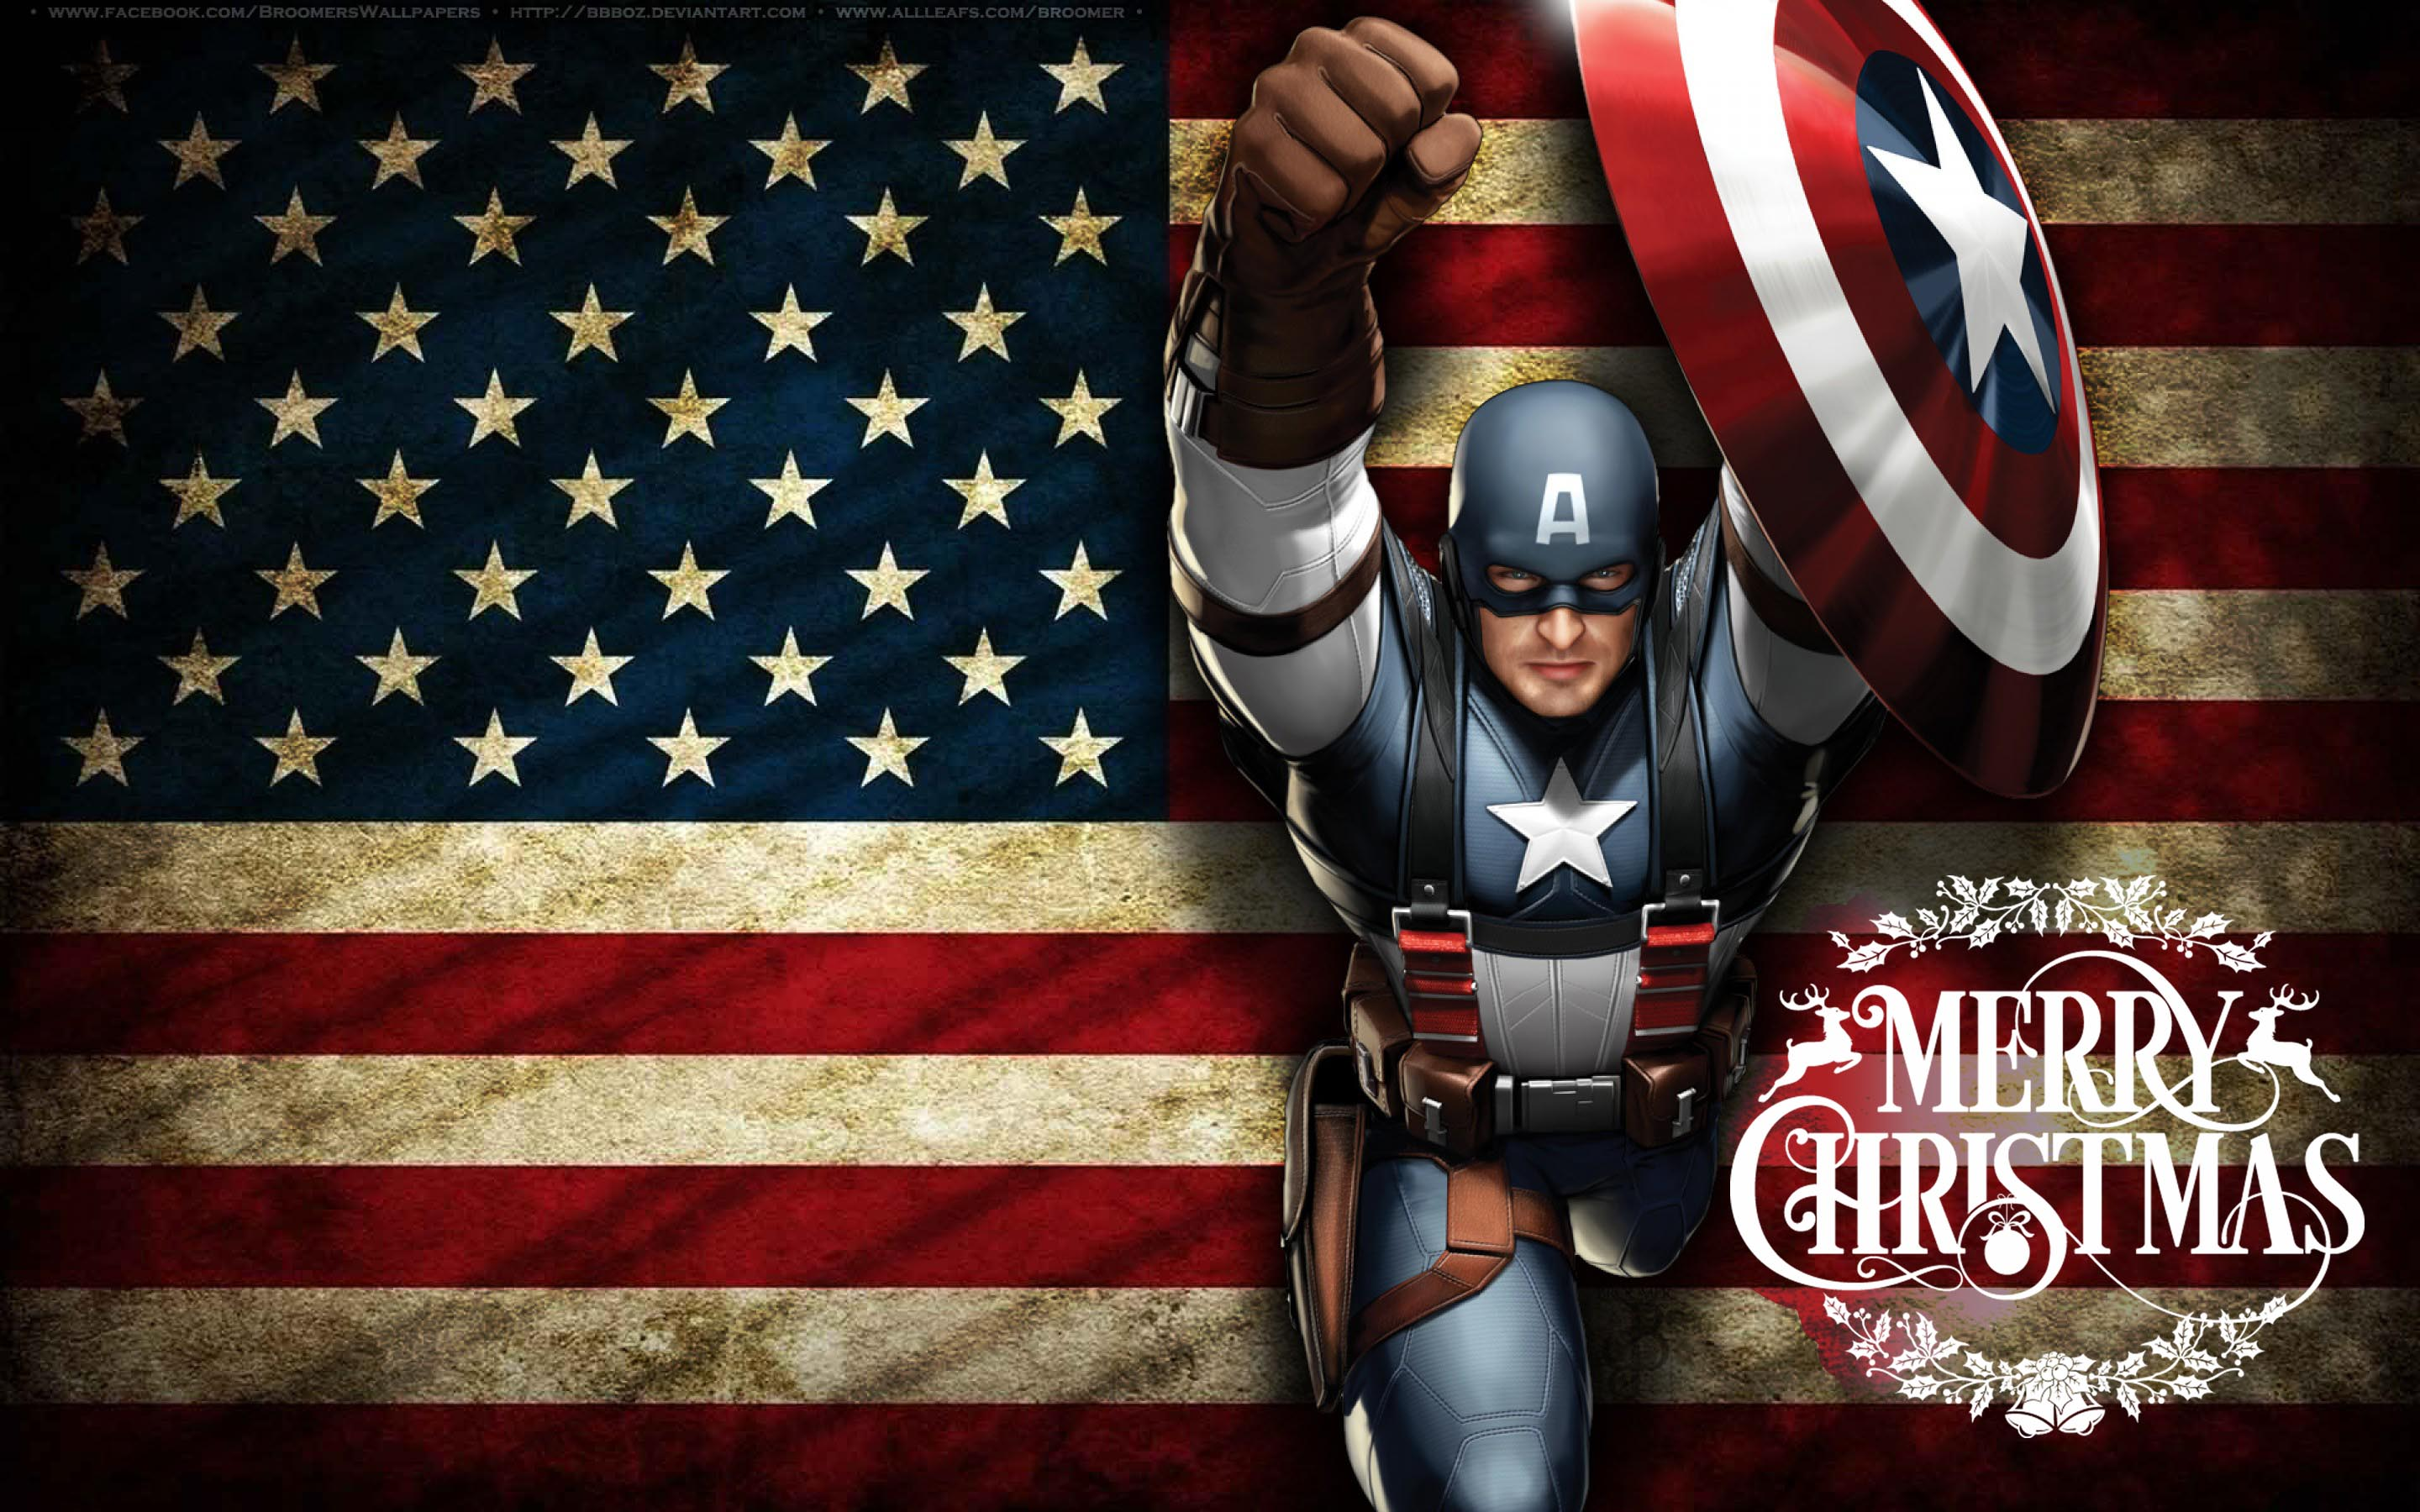 happy merry christmas wishes super hero captain america kids hd wallpaper